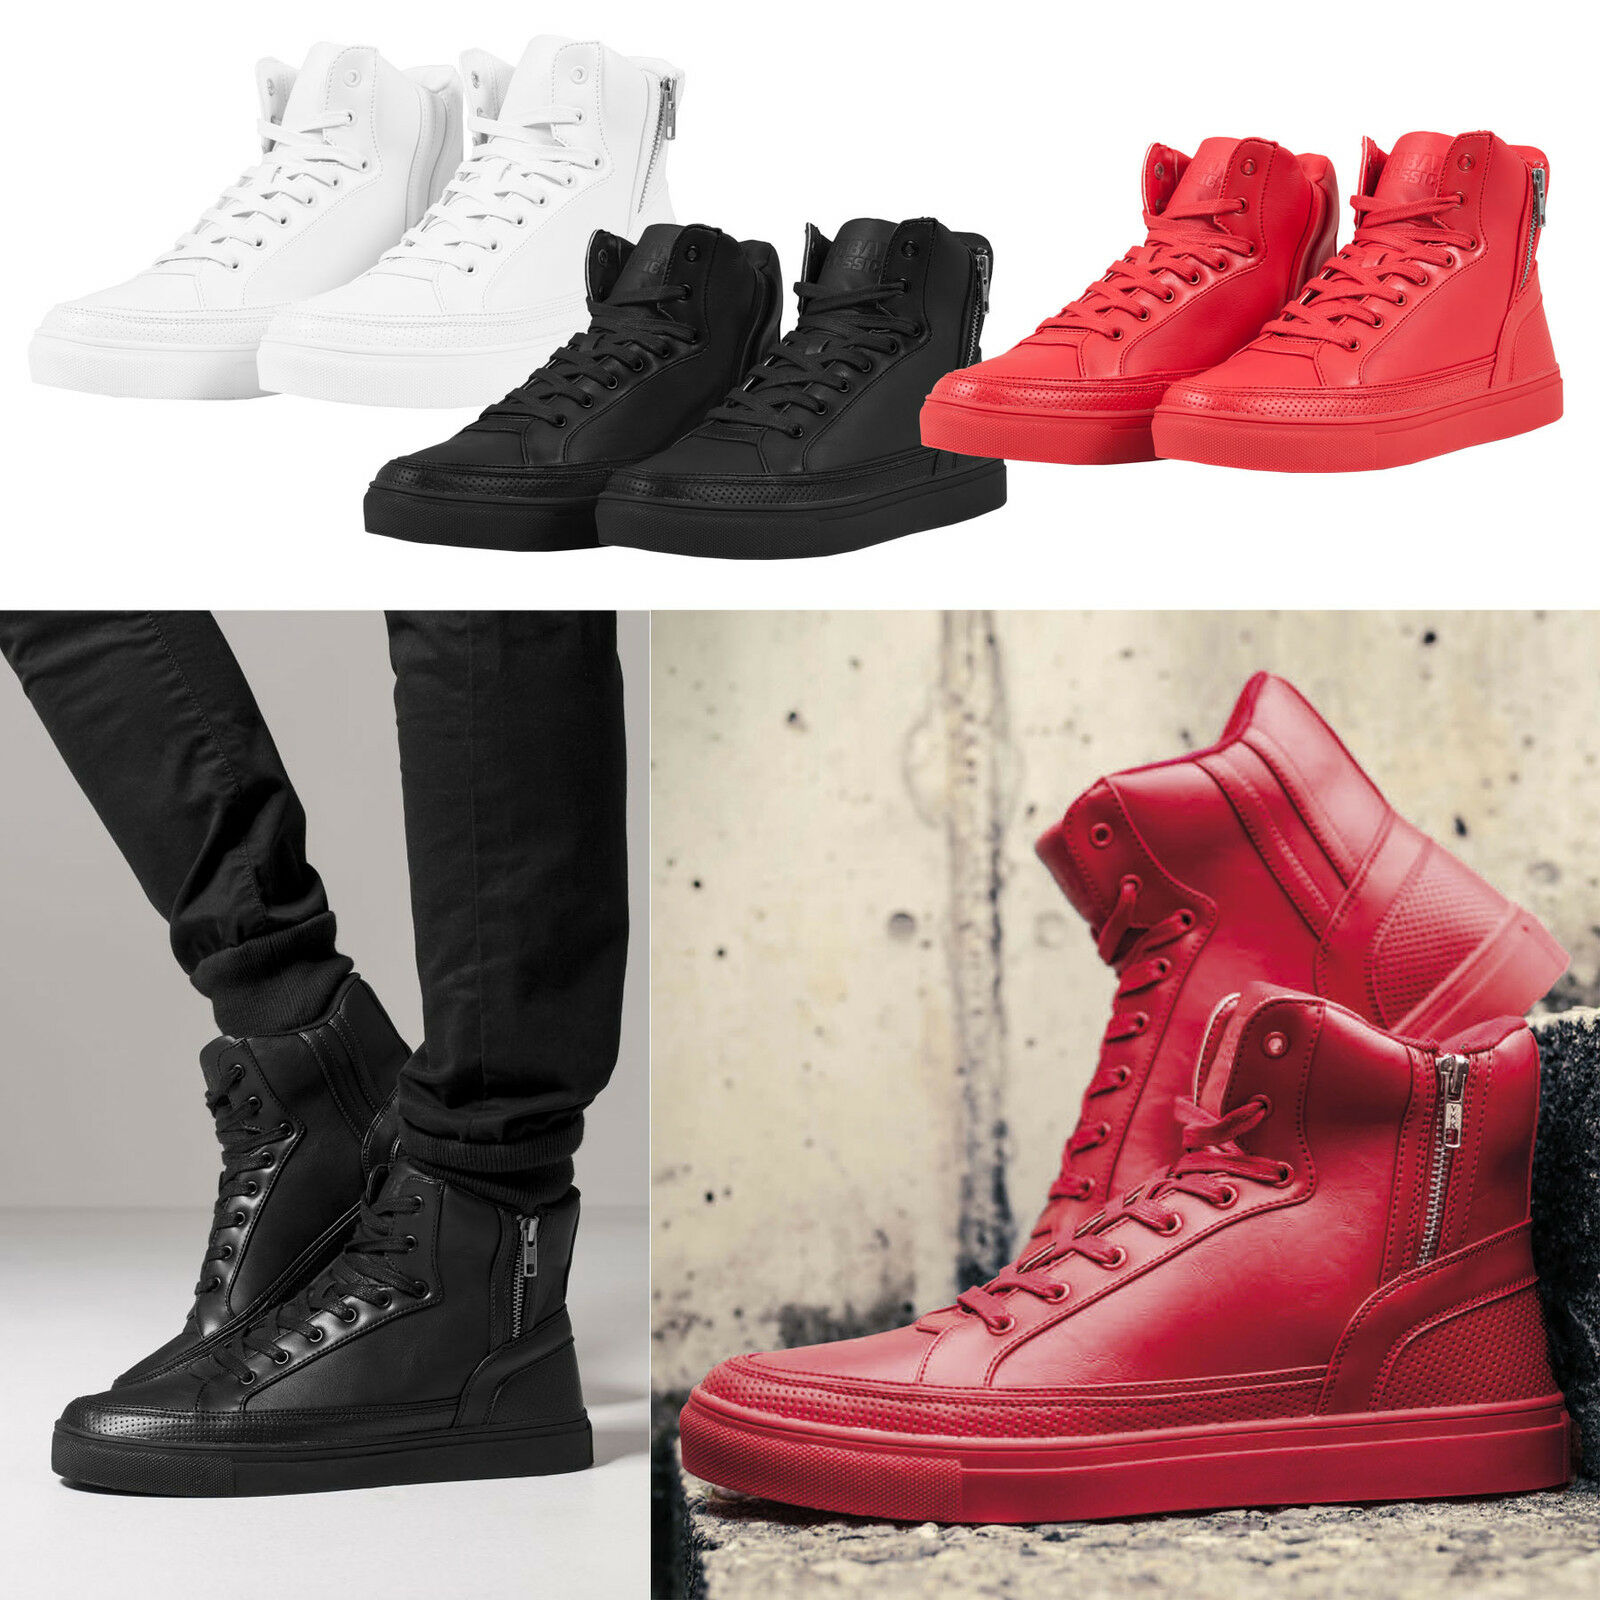 Urban Classics Zipper High Top shoes Unisex Men's Women's Sneaker 36-47 Tb1271